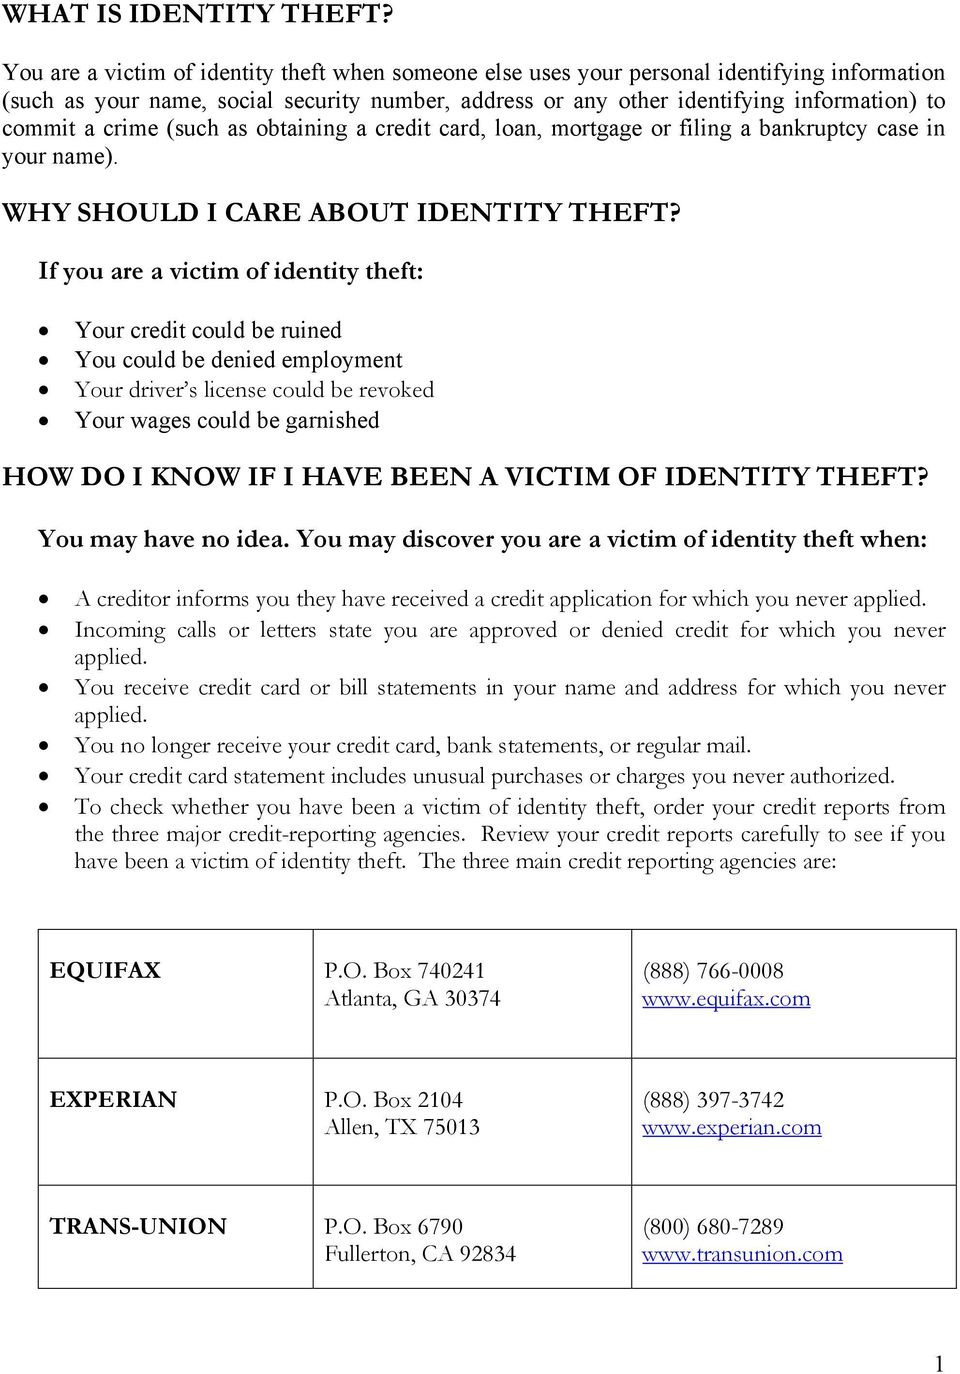 crime (such as obtaining a credit card, loan, mortgage or filing a bankruptcy case in your name). WHY SHOULD I CARE ABOUT IDENTITY THEFT?